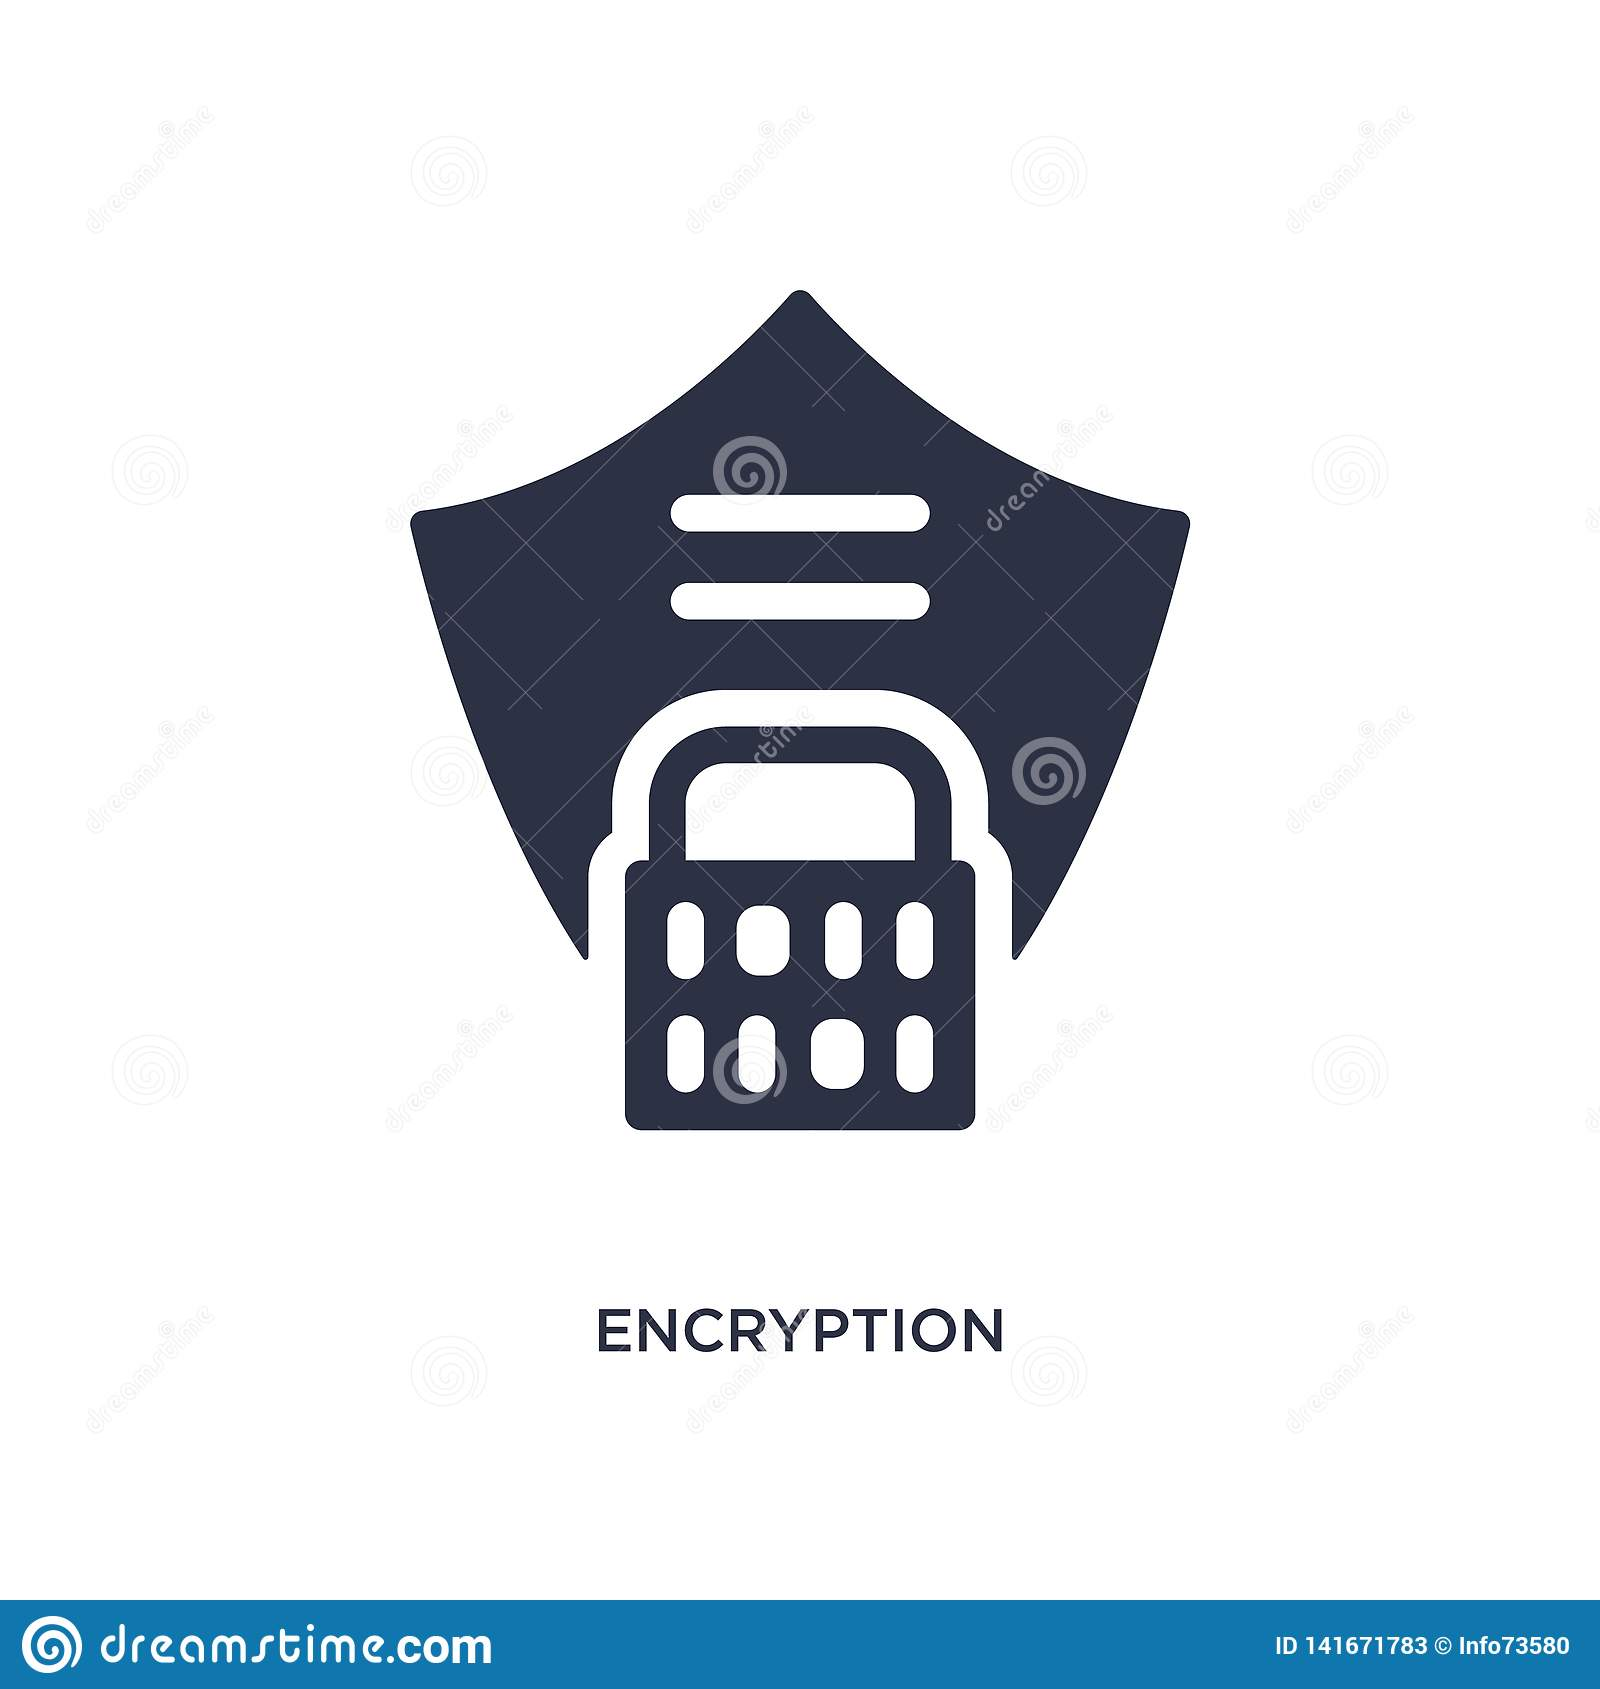 encryption icon on white background. Simple element illustration from gdpr concept